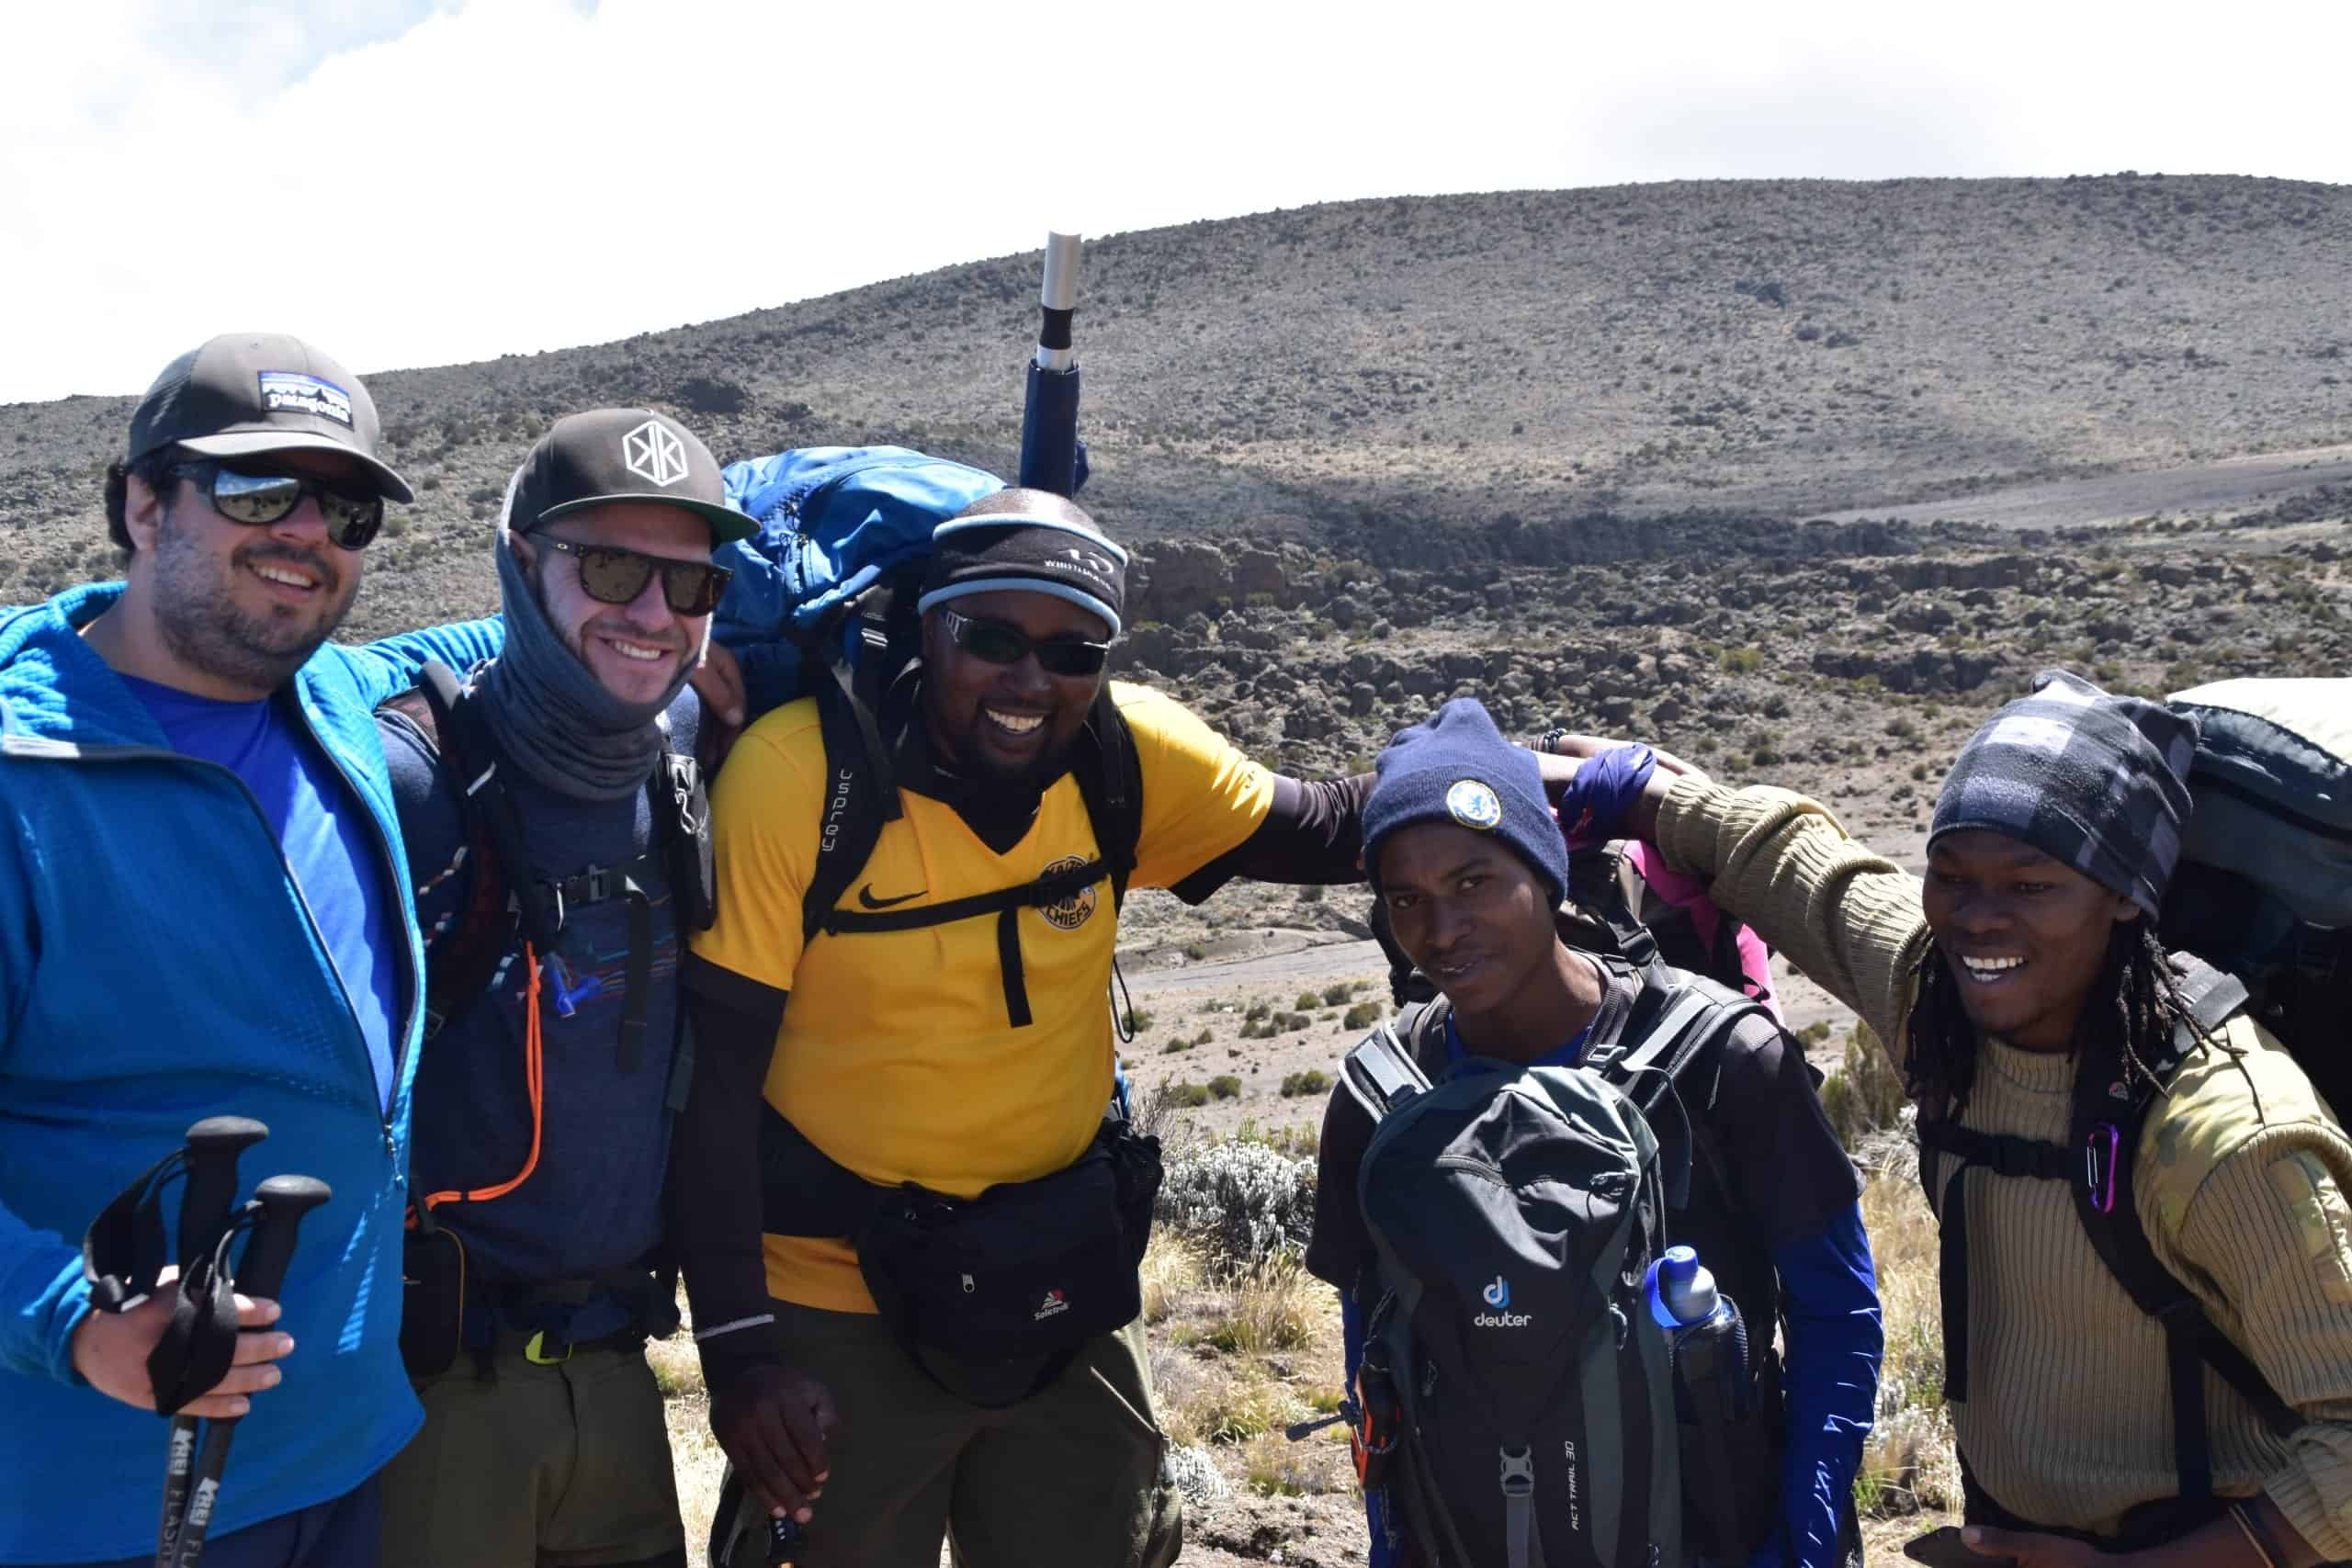 Two trekkers and three mountain crew, including chief guide Joshua Ruhimbi and assistant guide Ibrahim, pose for the camera with the desert slopes of Kibo behind, near Third Cave Campsite